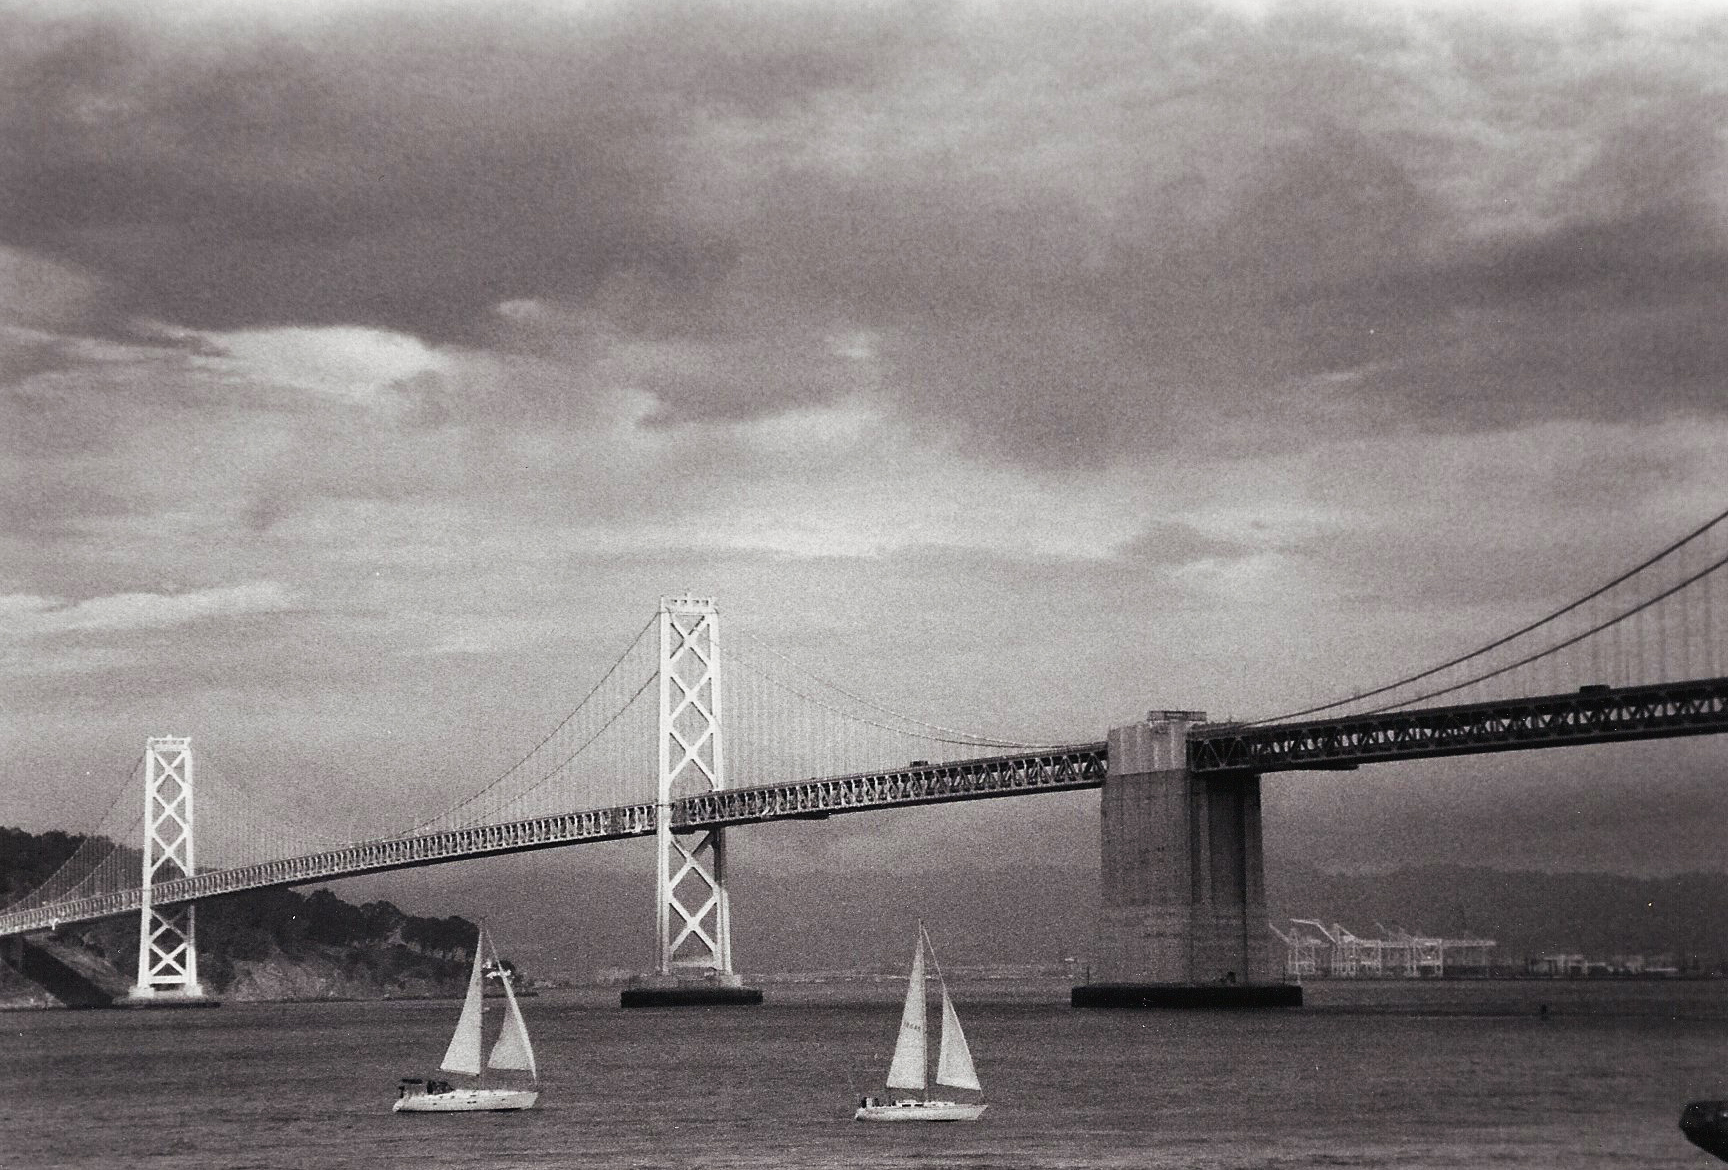 Former Bay Bridge - 35mm Film